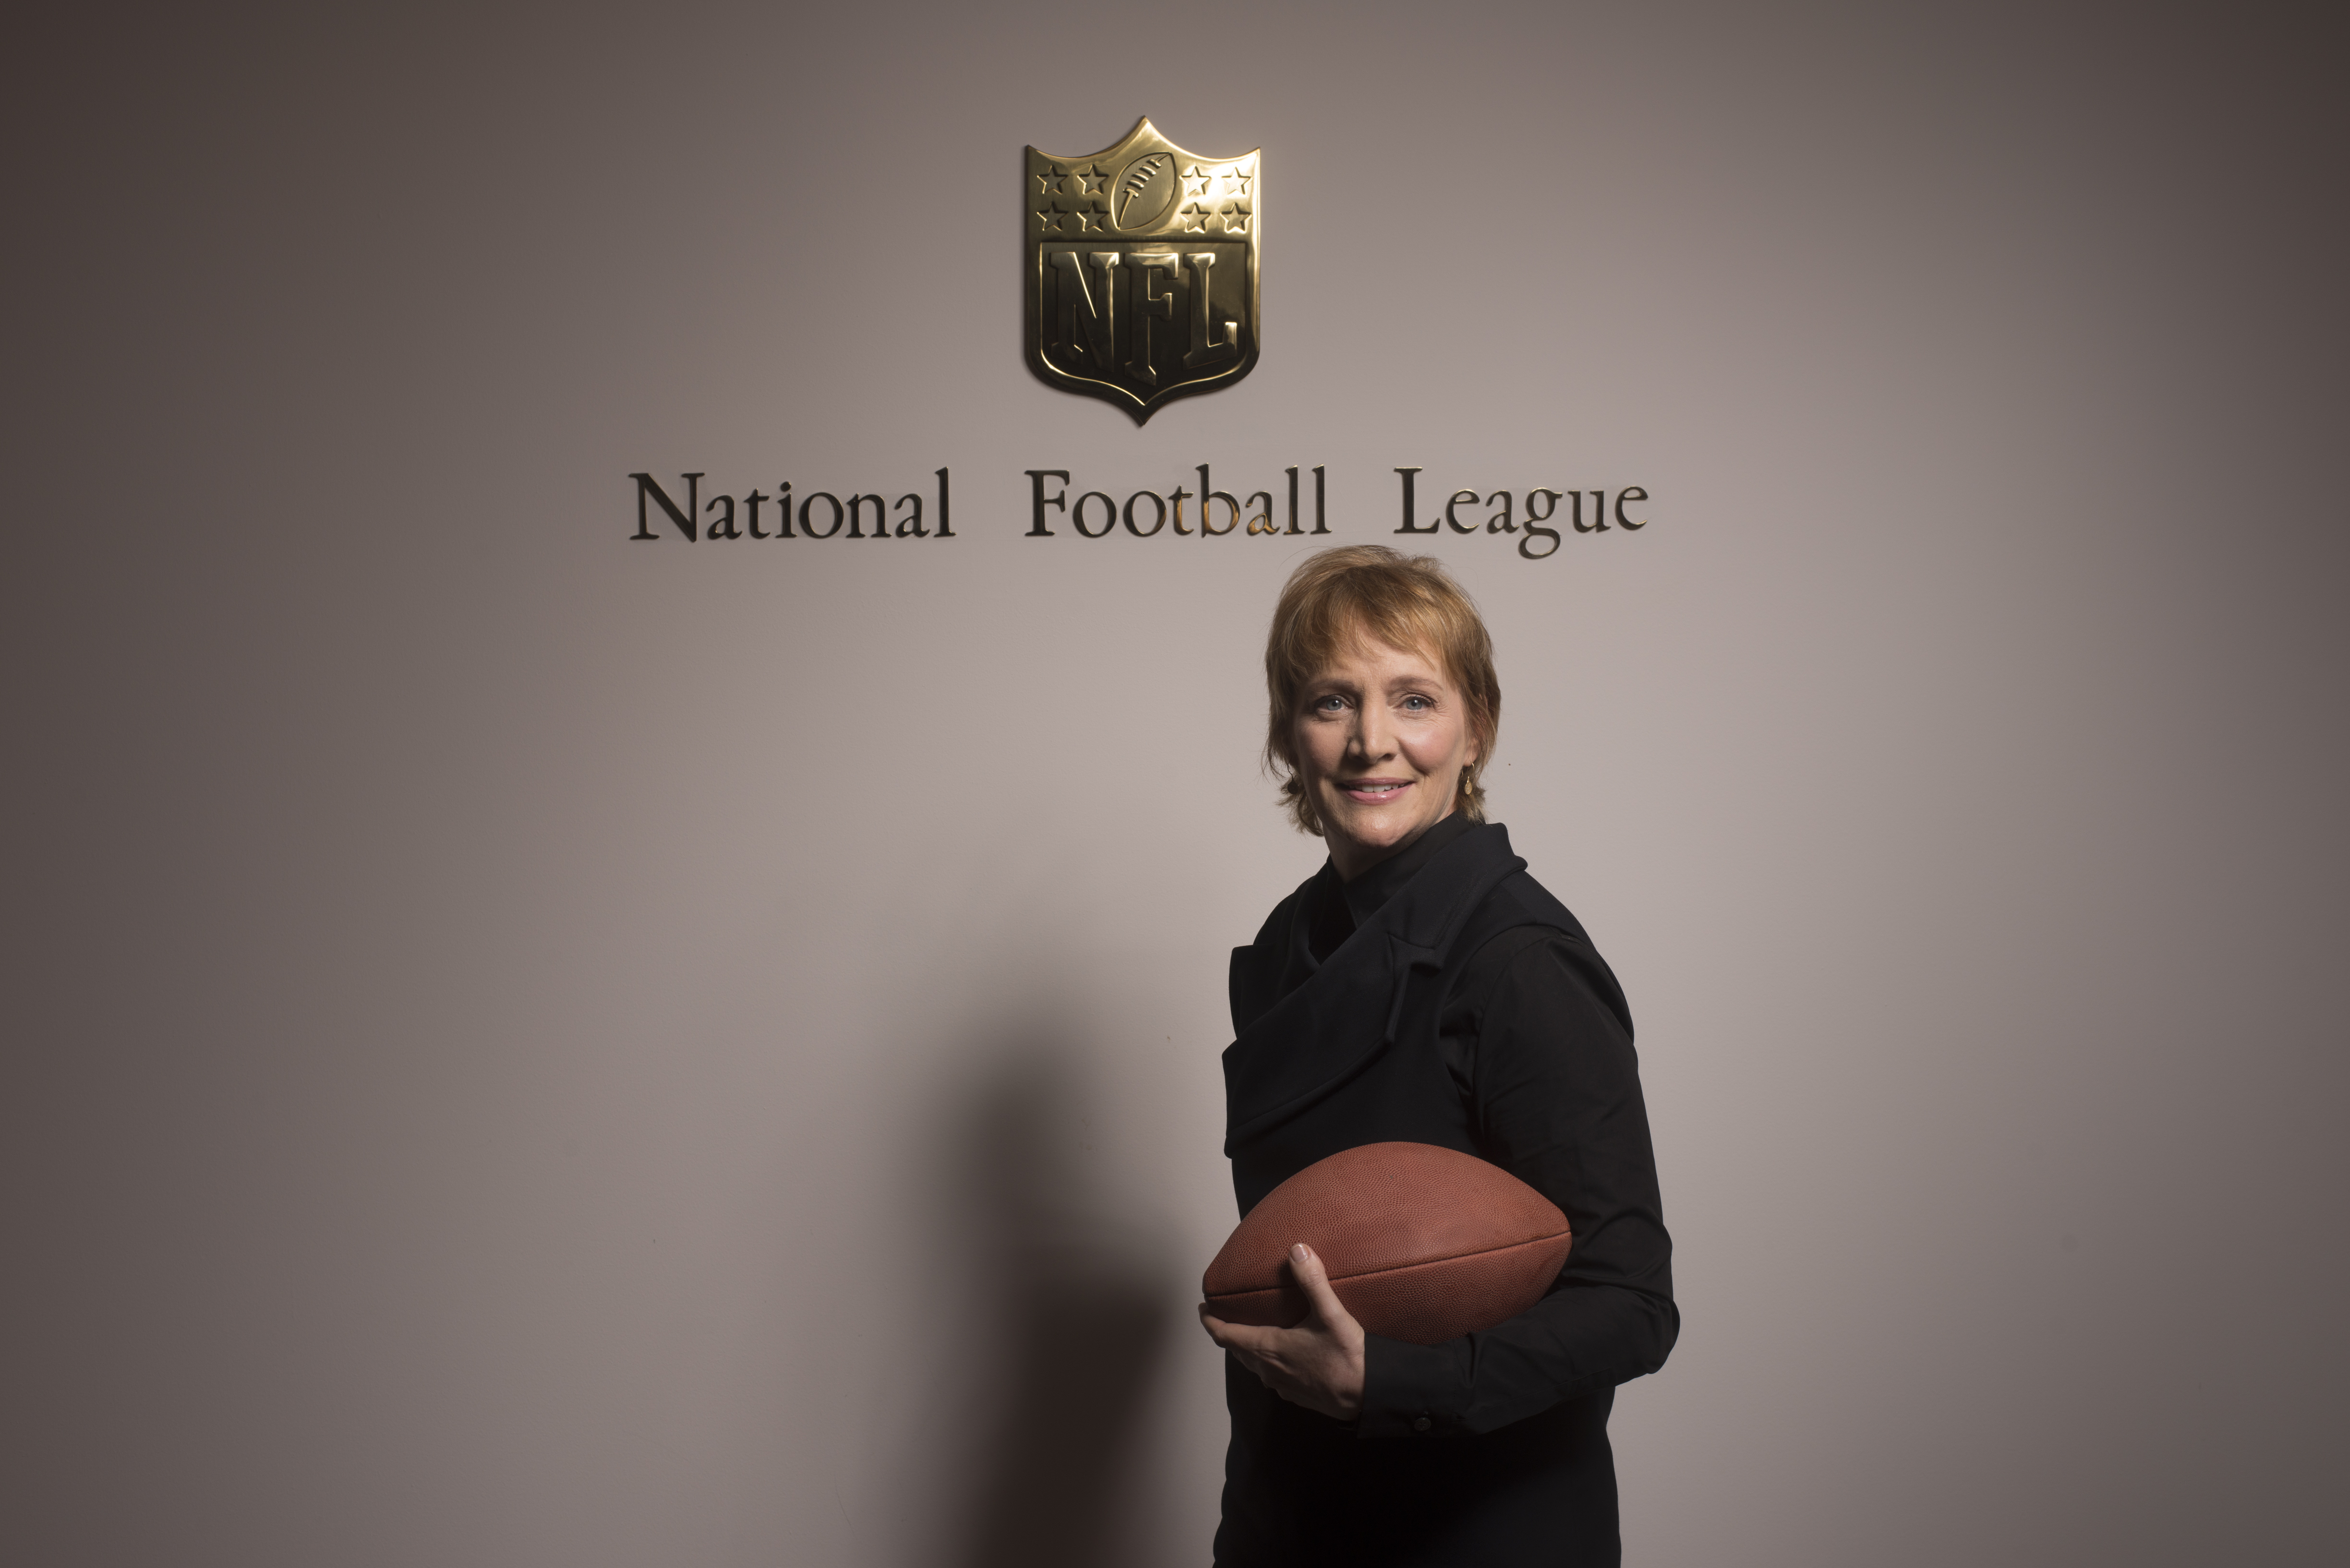 Cynthia Hogan has been hired by the National Football League to help the organization with their issues of players abusing women.